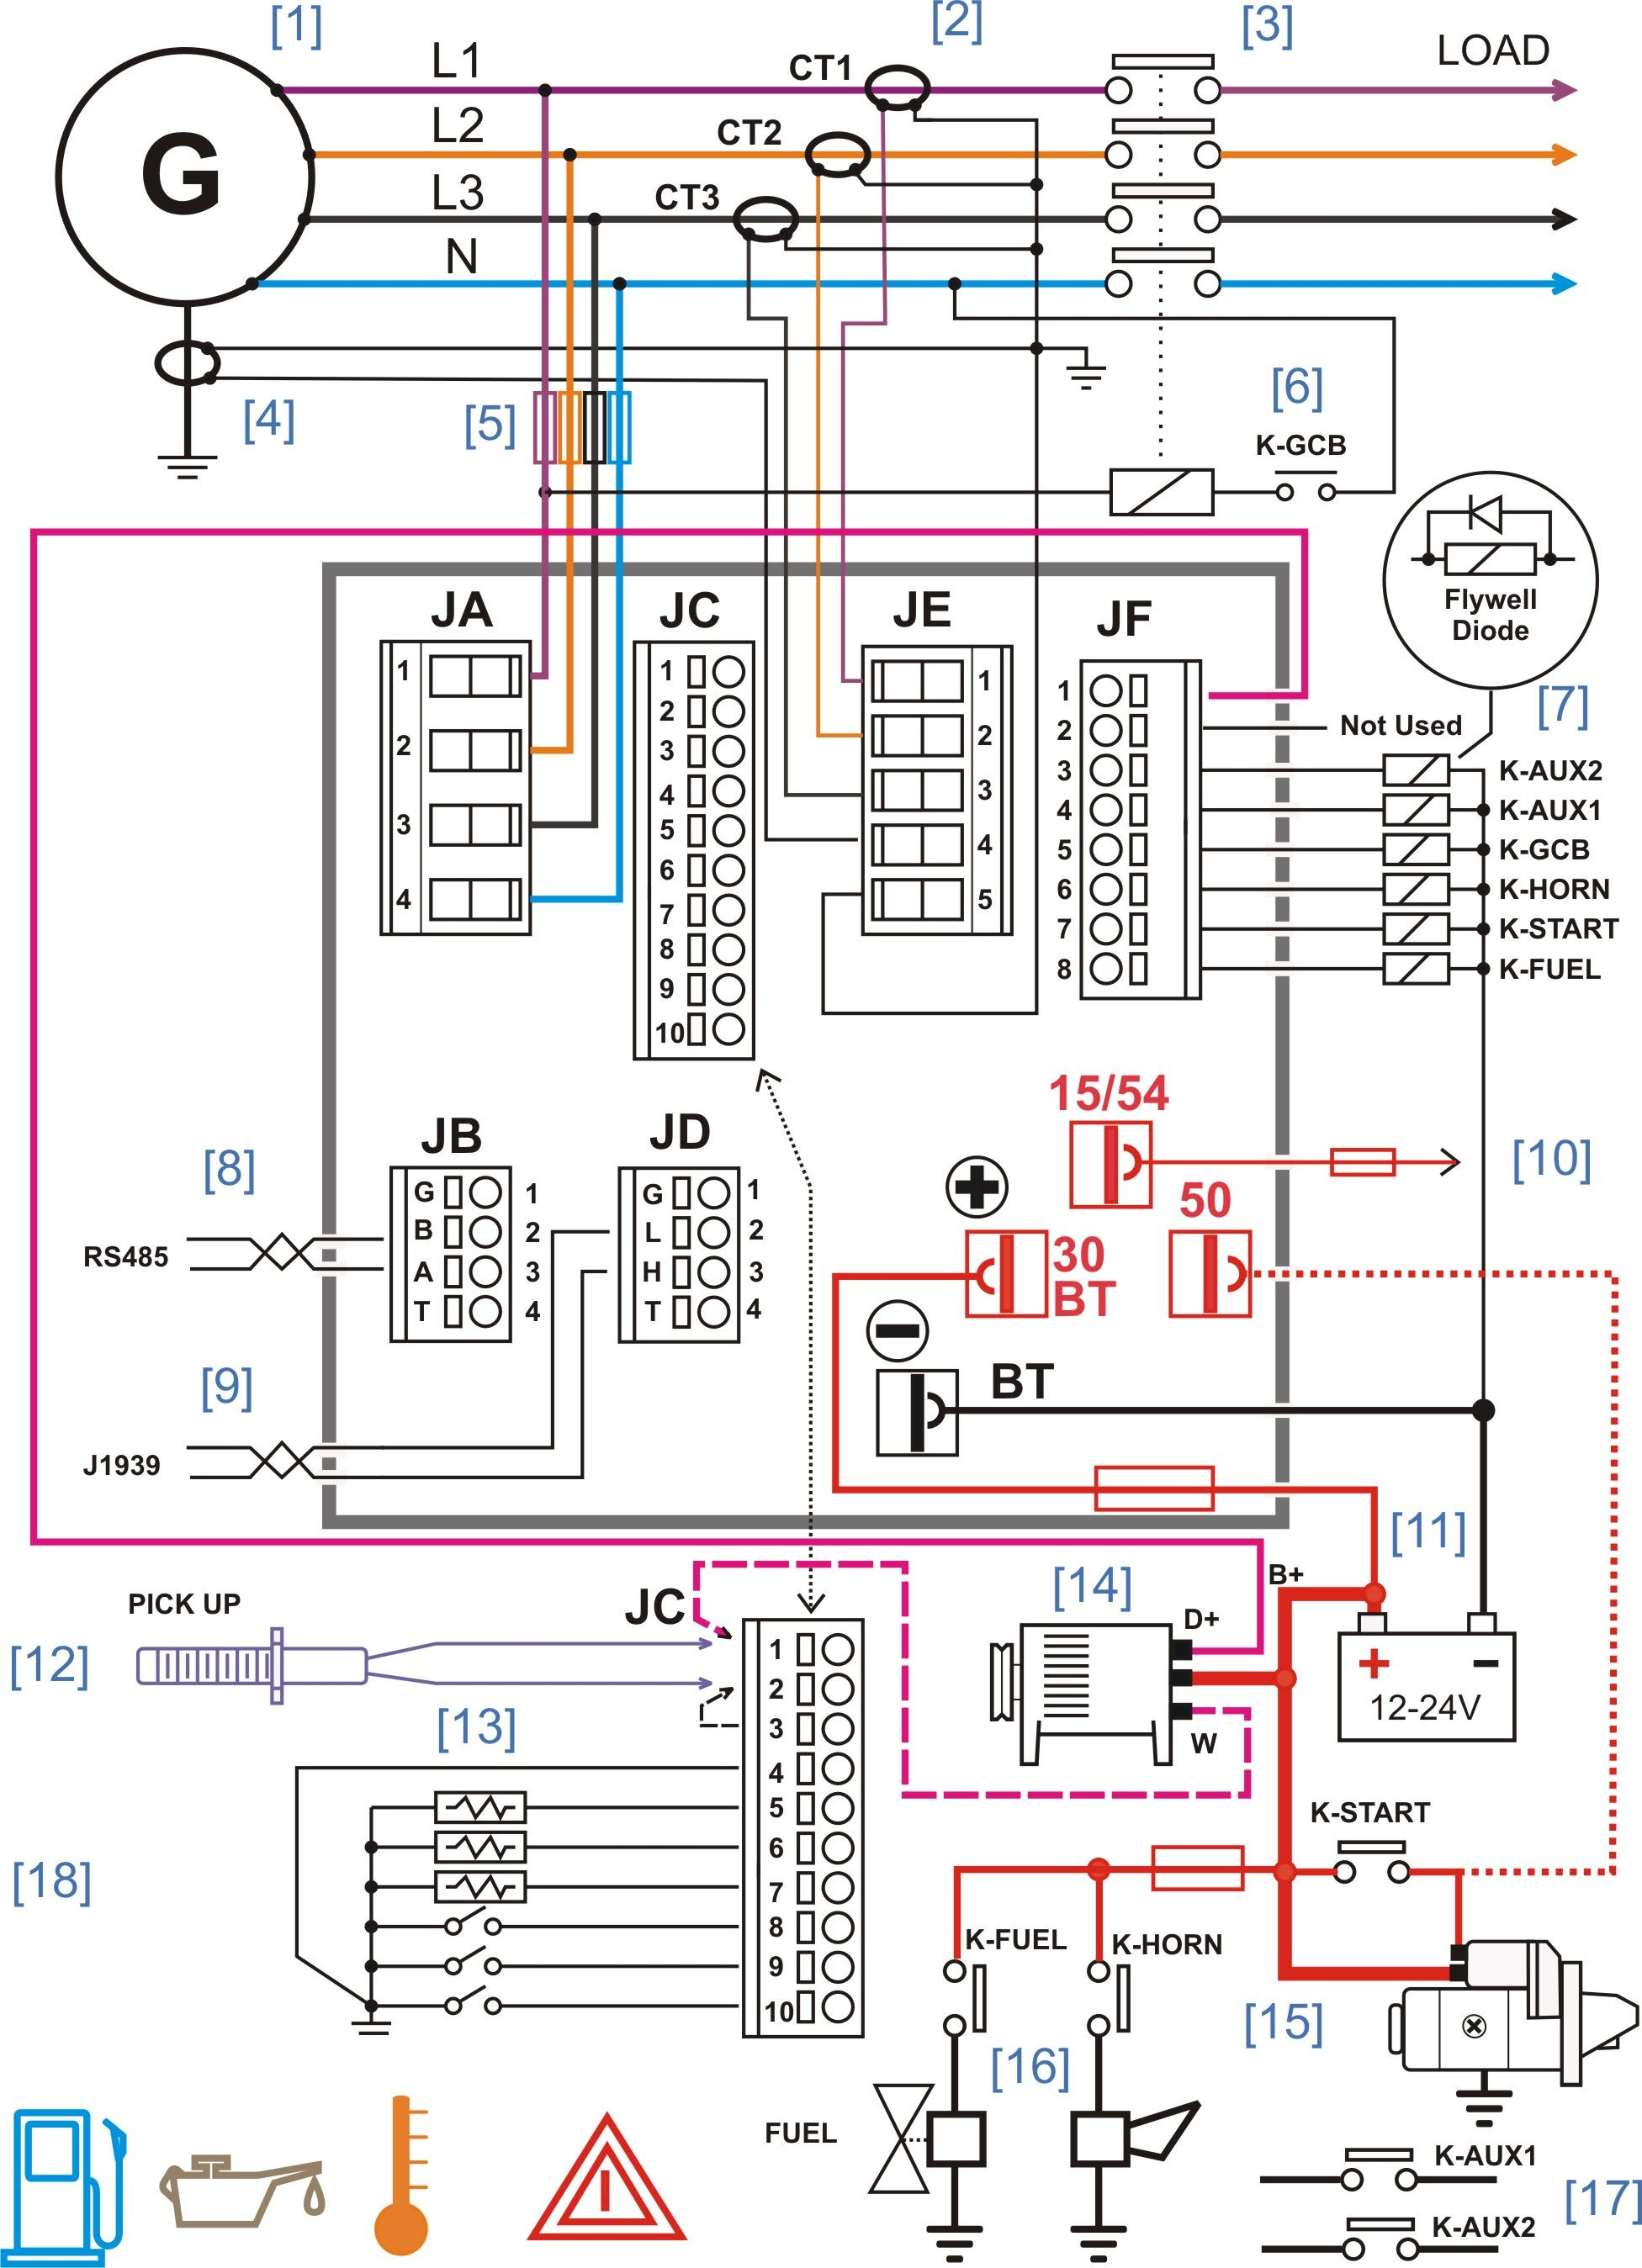 generator voltmeter ac wiring circuits wiring diagram site Understanding Electrical Diagrams